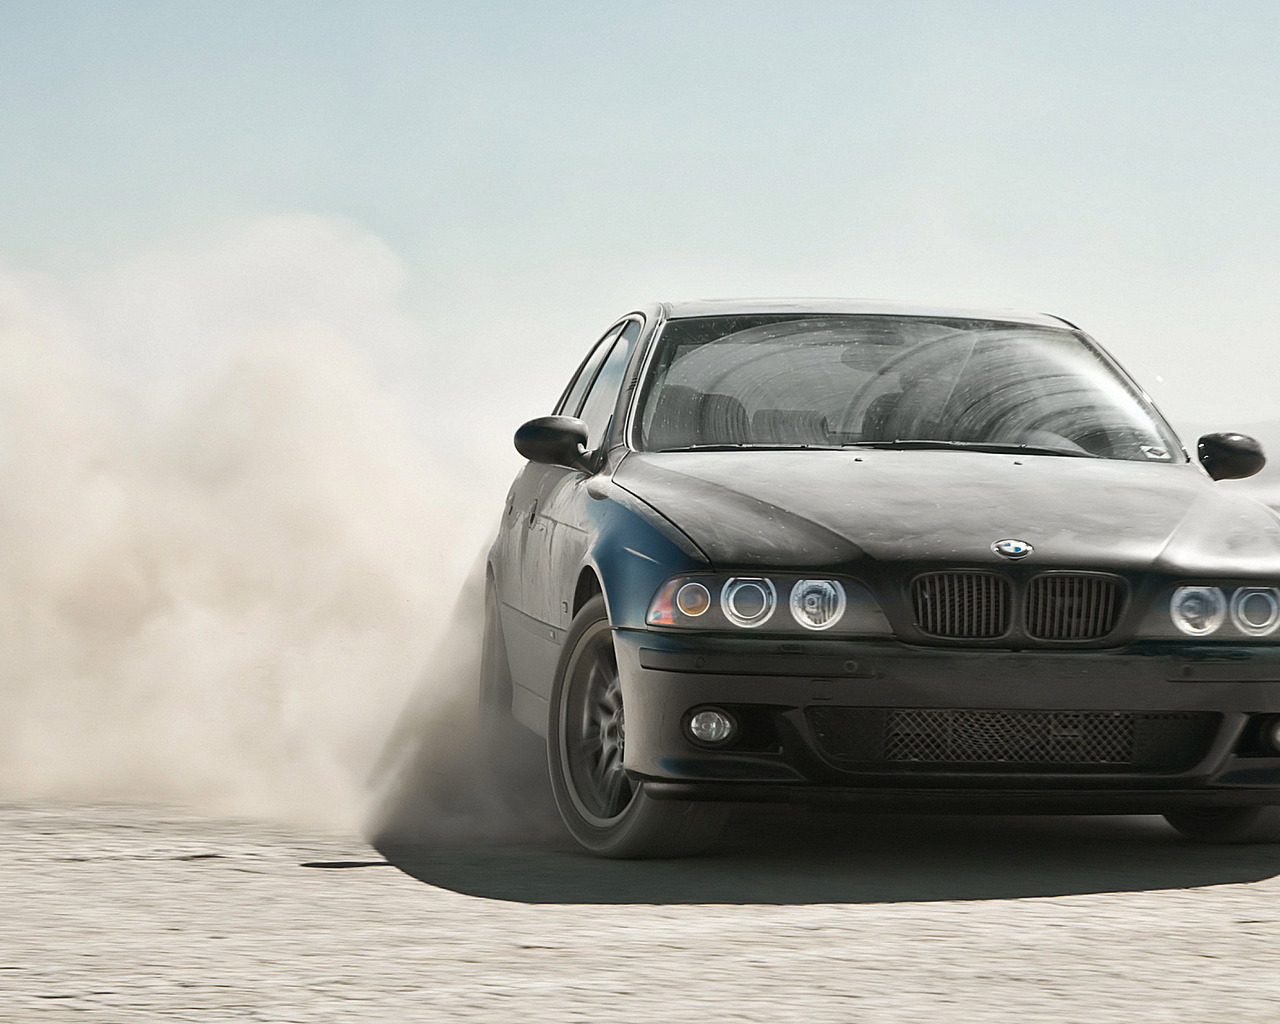 10941 download wallpaper Transport, Auto, Bmw screensavers and pictures for free